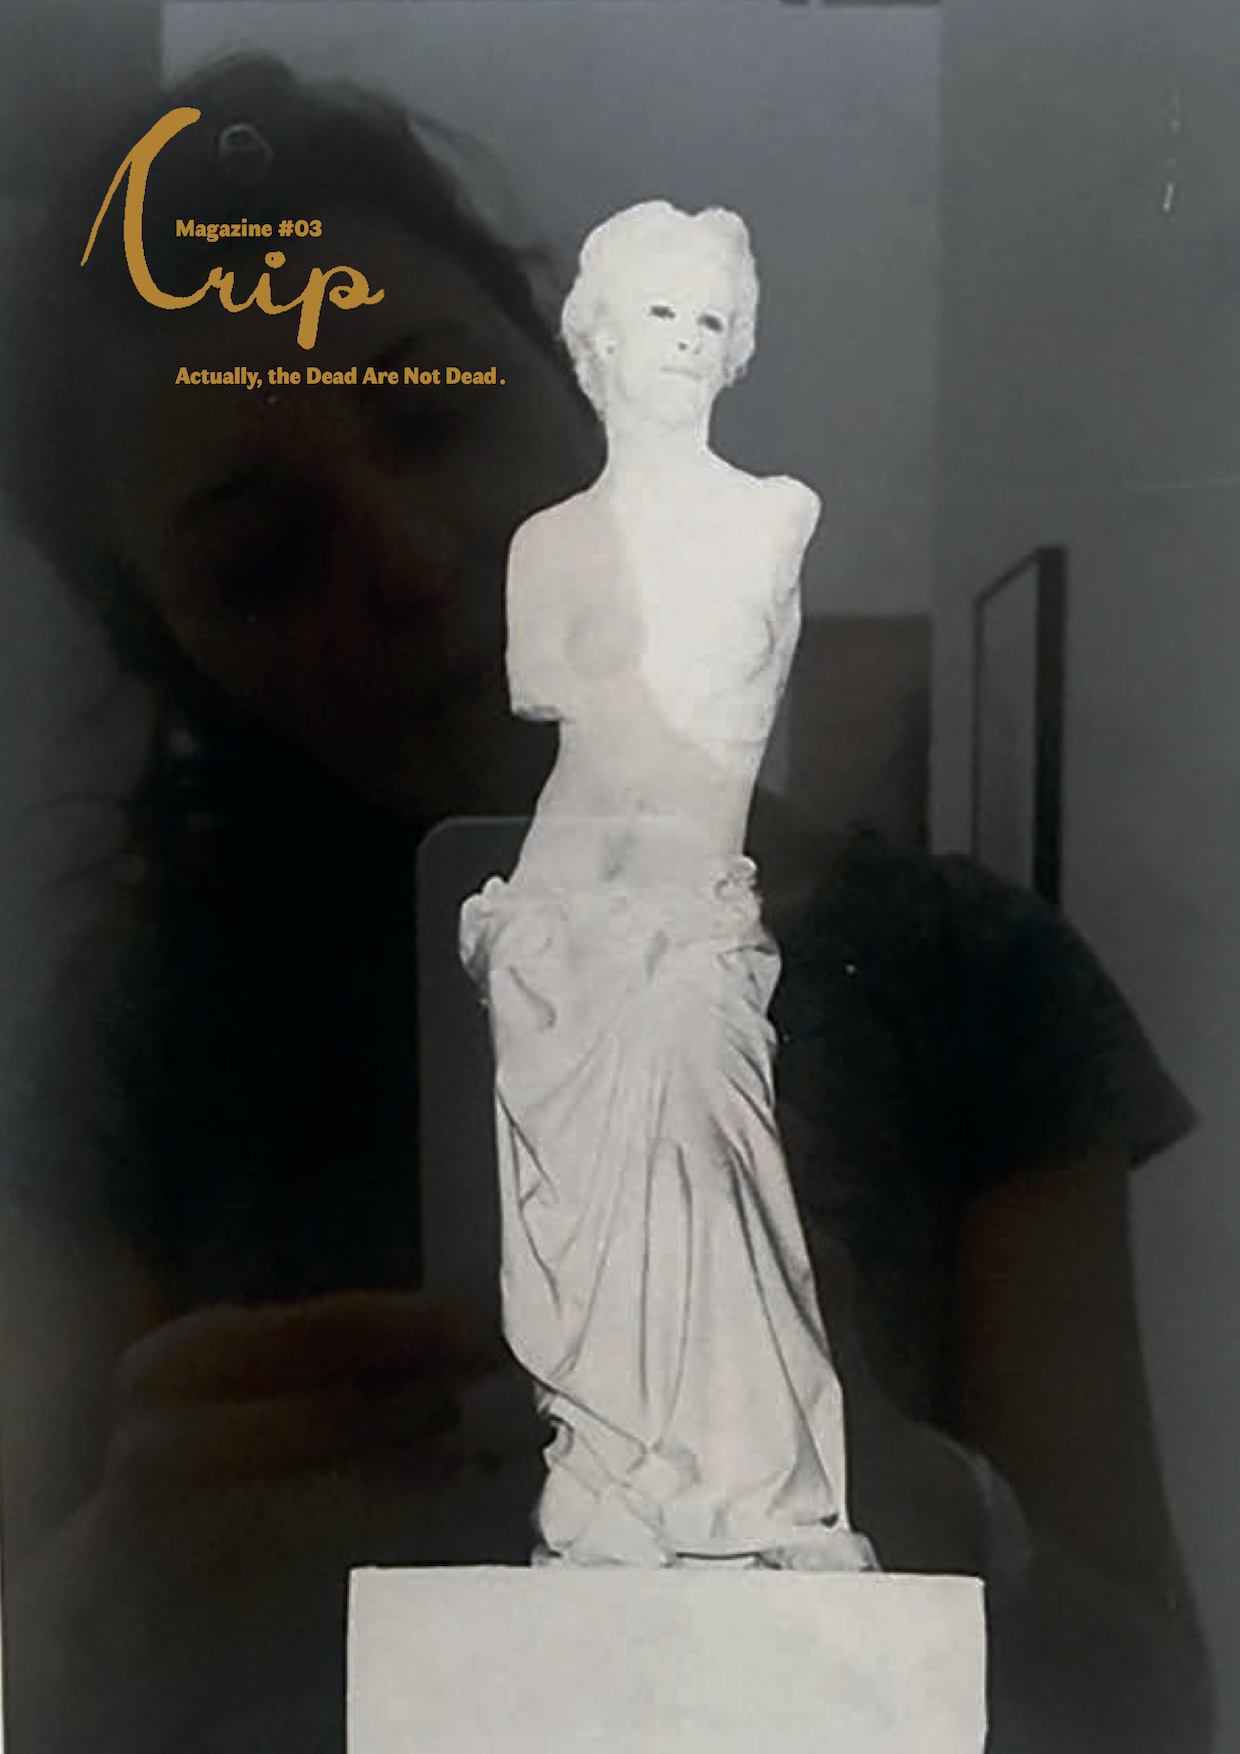 Image Credits: Cover of Crip Magazine #3 Actually, the Dead Are Not Dead: Lorenza Böttner performing Venus de Milo, Snapshot by Eva Egermann in the Exhibition Requiem to the Norm, Württembergischer Kunstverein, 2019